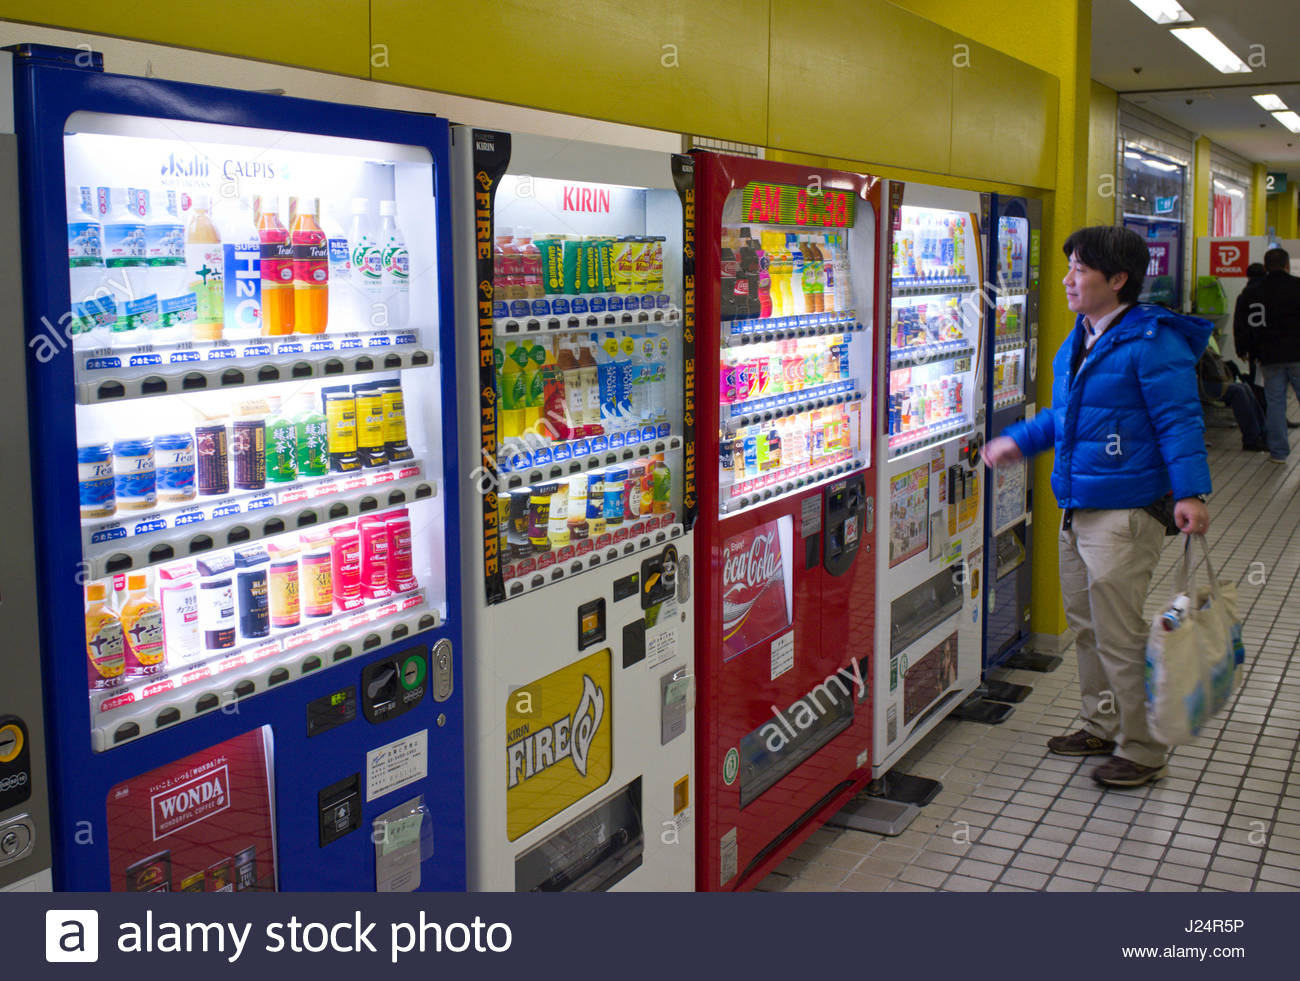 Japanese man looking at drink choices offered from vending machine in bus station, Minato-ku, Tokyo, Kanto, Japan Stock Photo